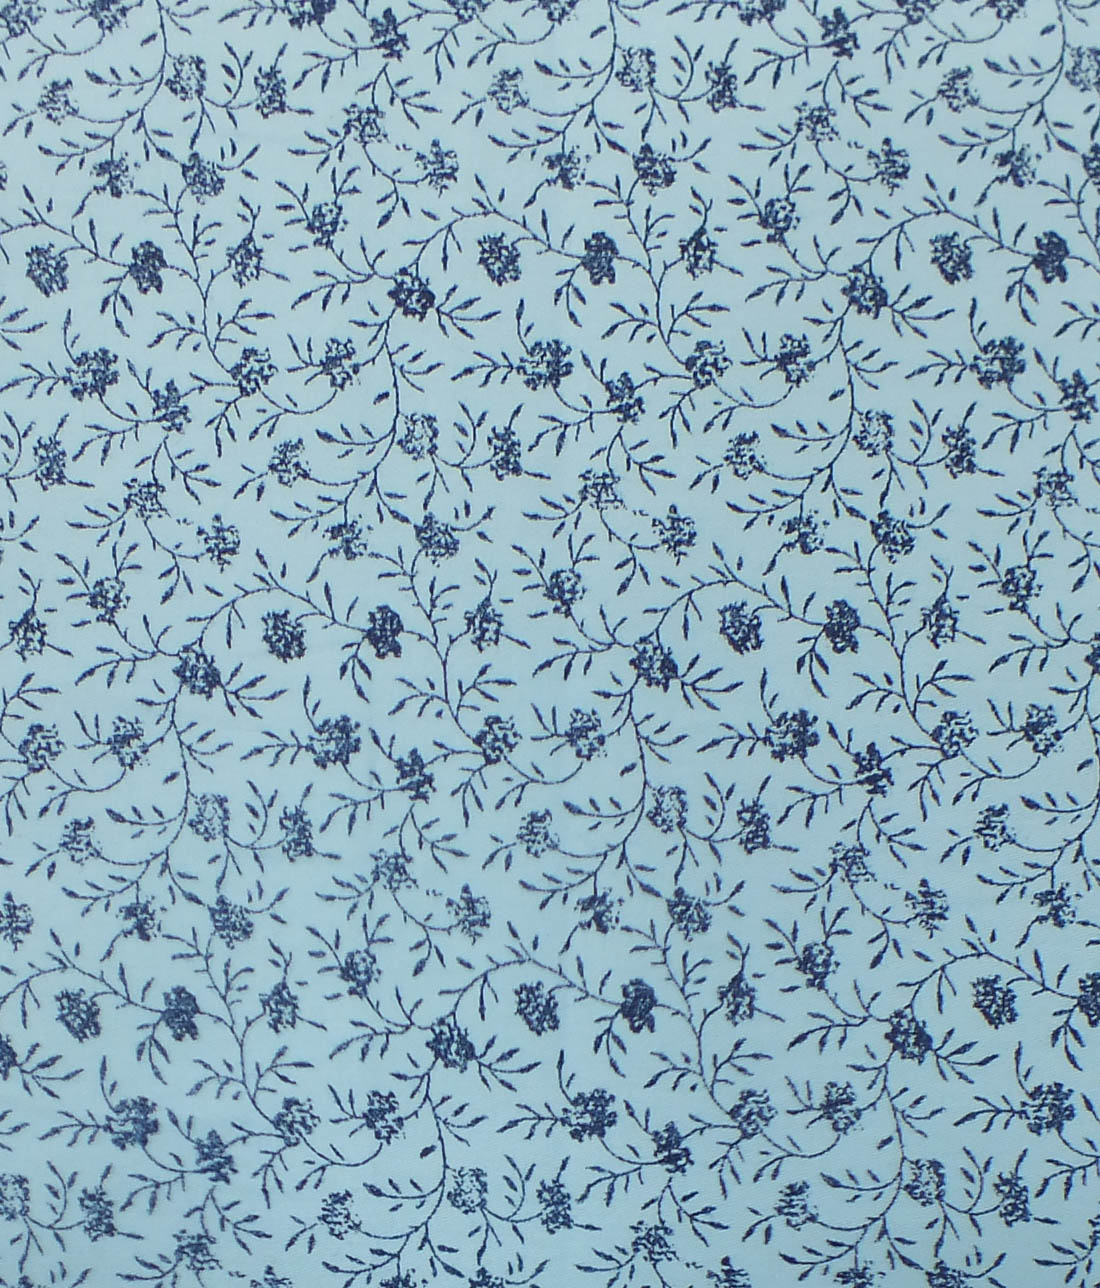 ce3d418db Raymond Dark Blue Checks Trouser Fabric With Exquisite Sky Blue Floral  Printed Shirt Fabric (Unstitched)